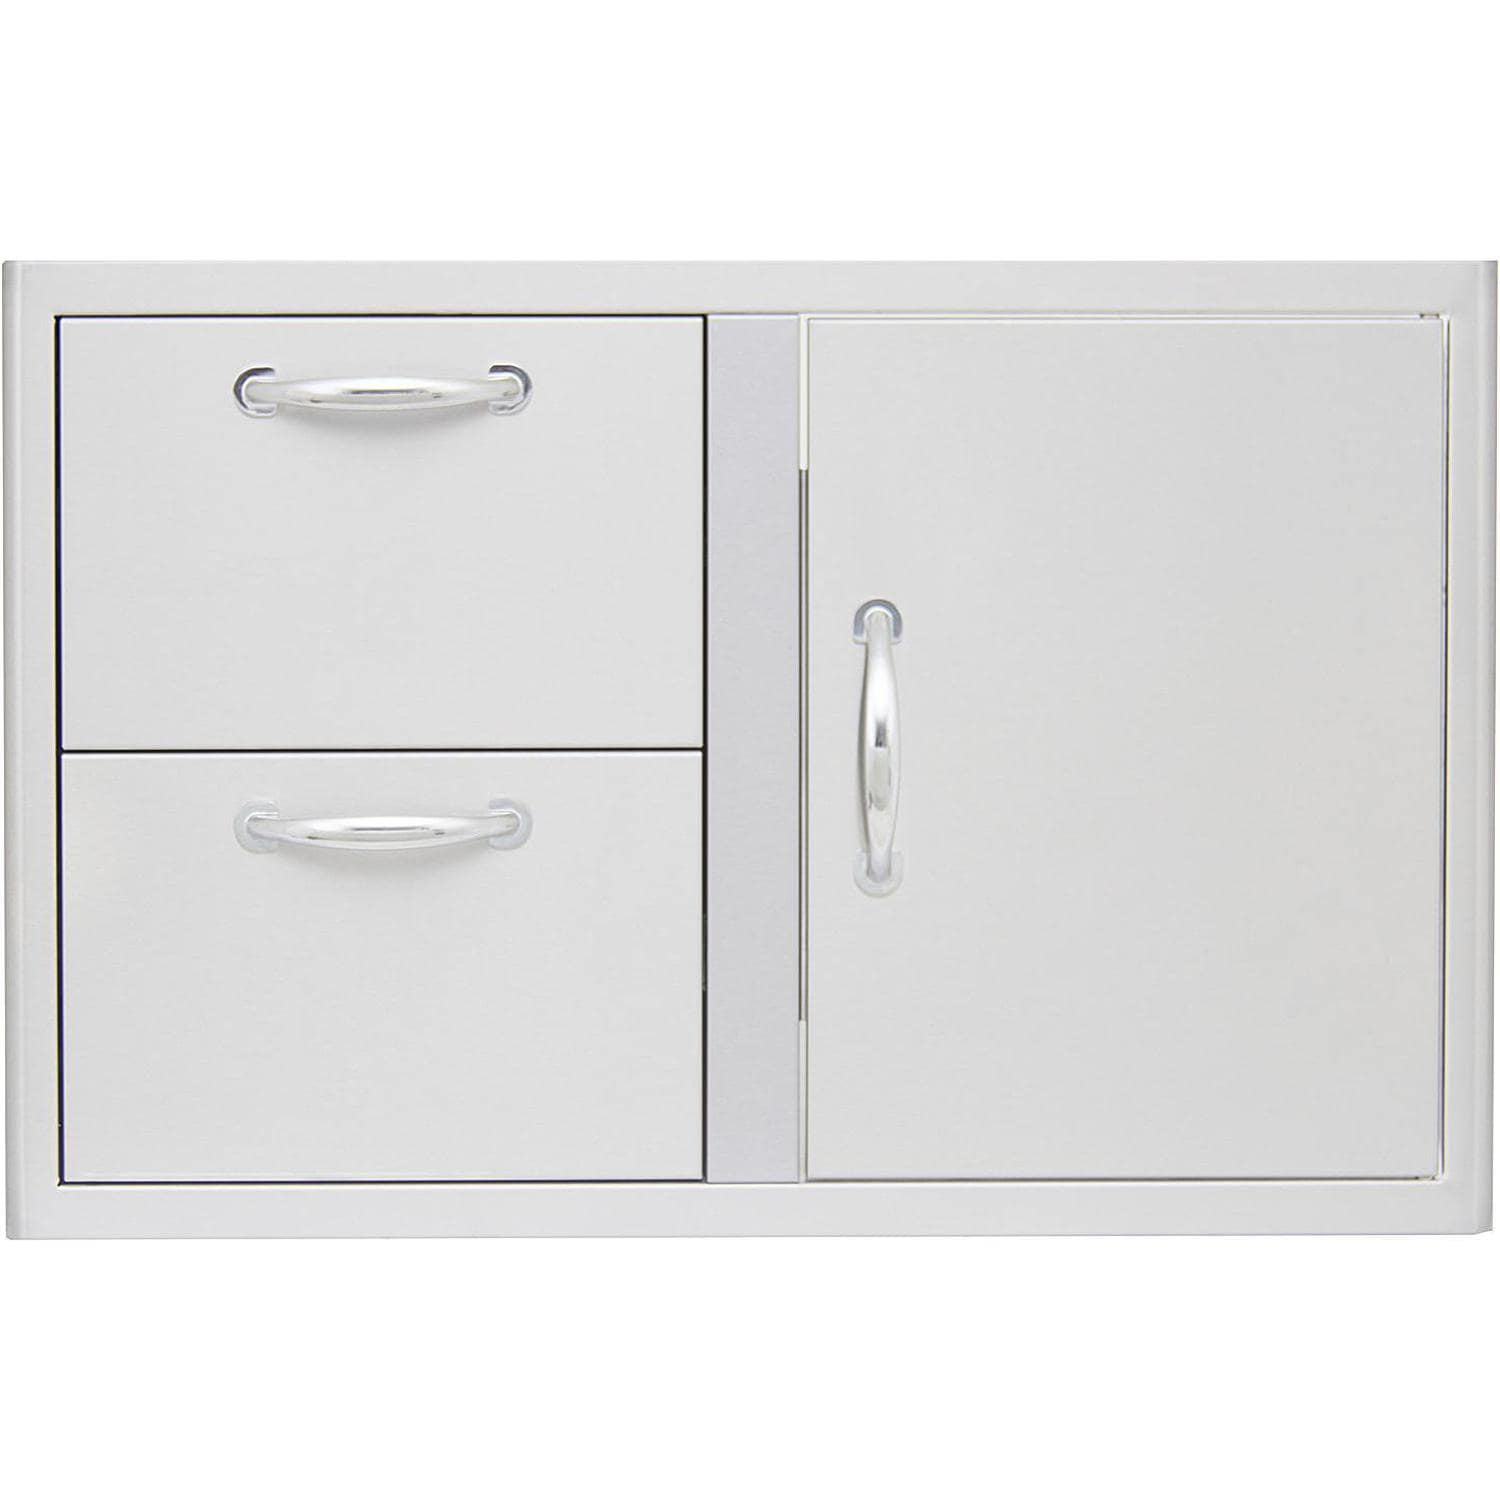 Blaze Outdoor Products Blaze  32-Inch Access Door and Stainless Steel Double Drawer Combo BLZ-DDC-R